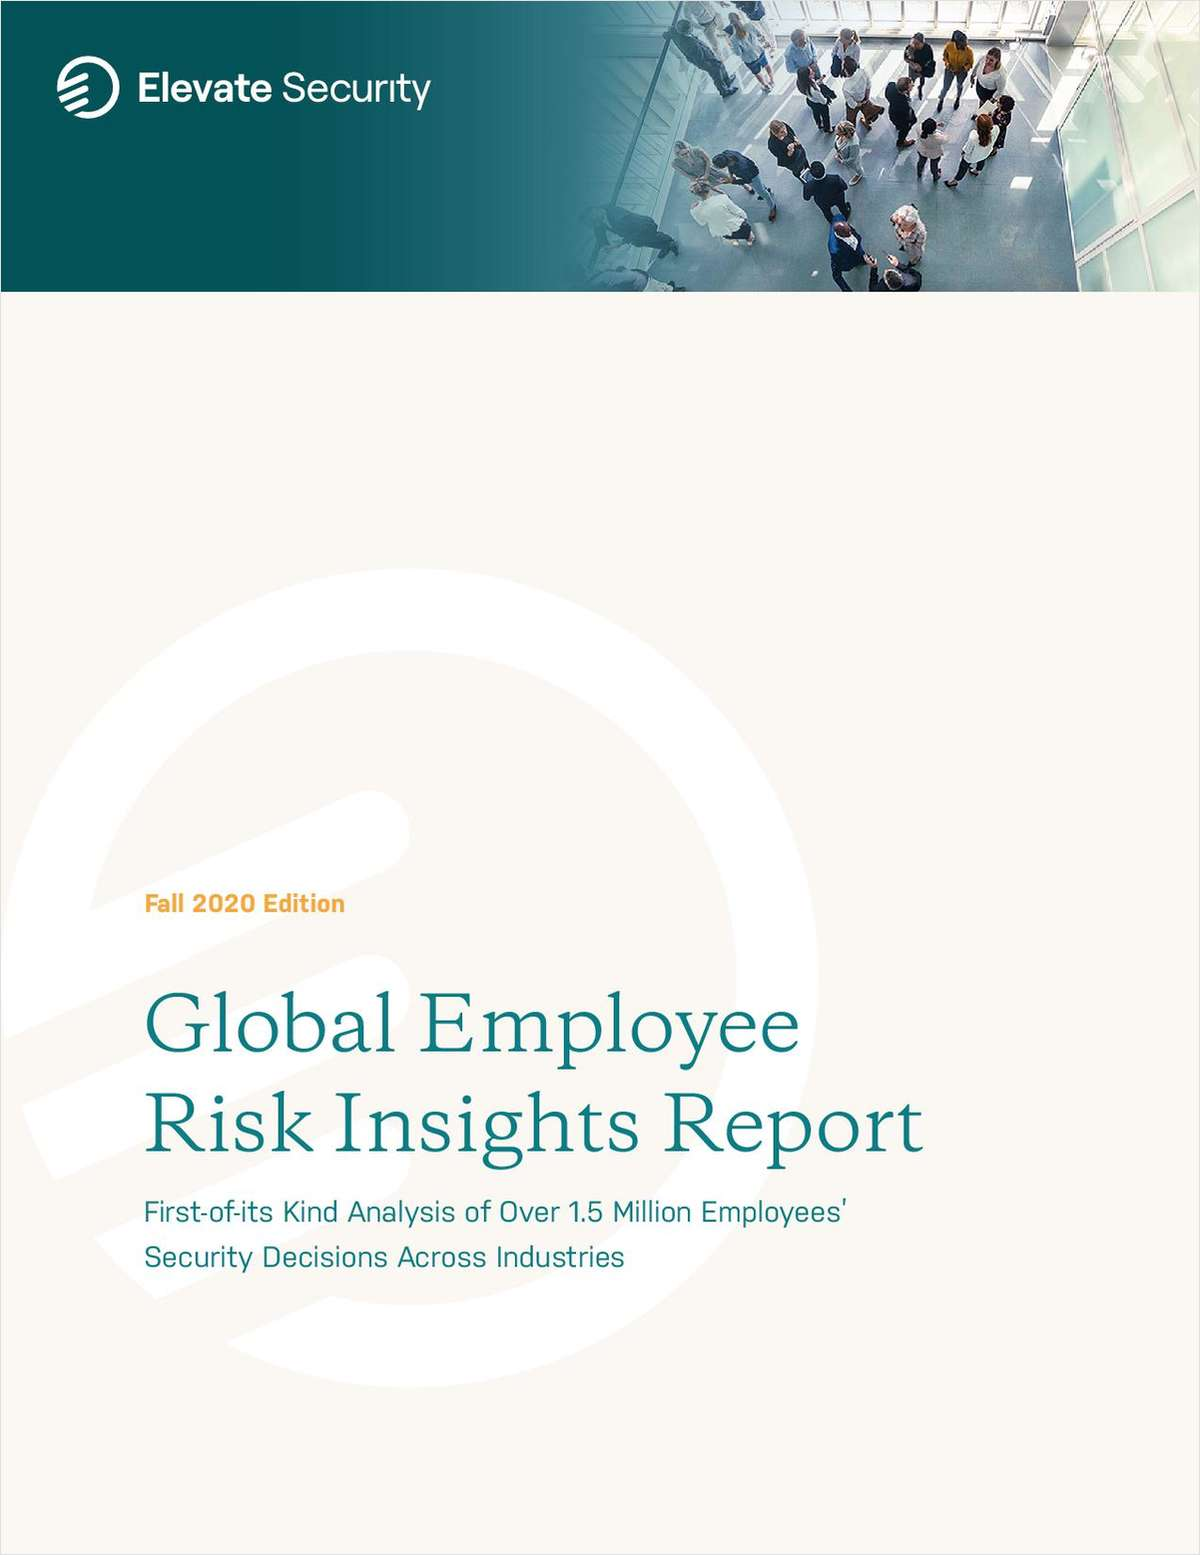 Global Employee Risk Insights Report